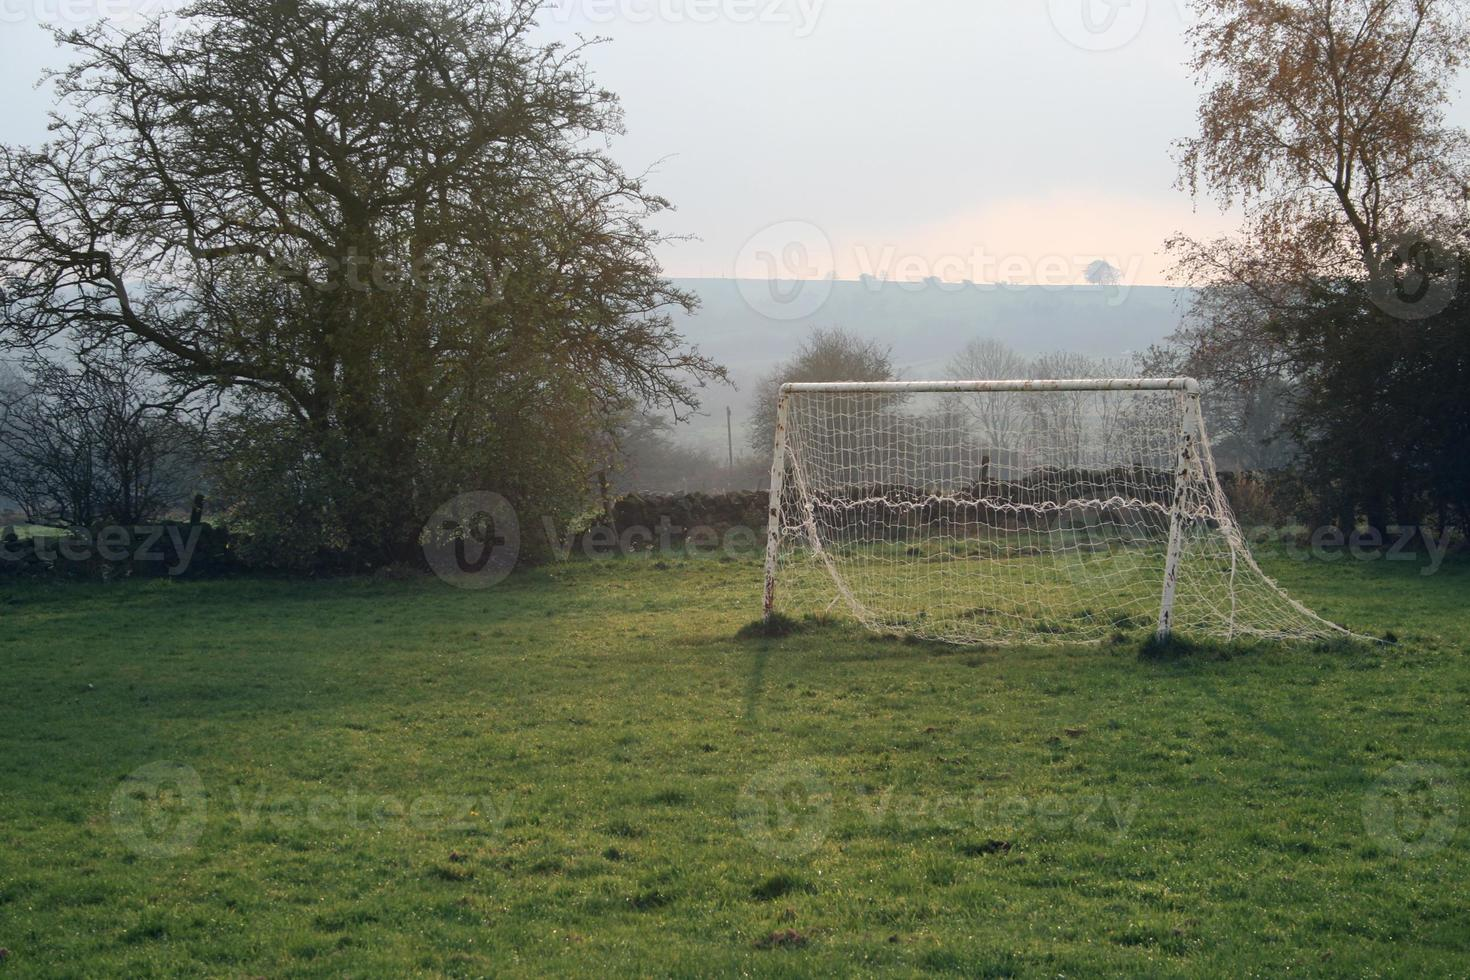 Lonely English Football, Soccer Goal photo